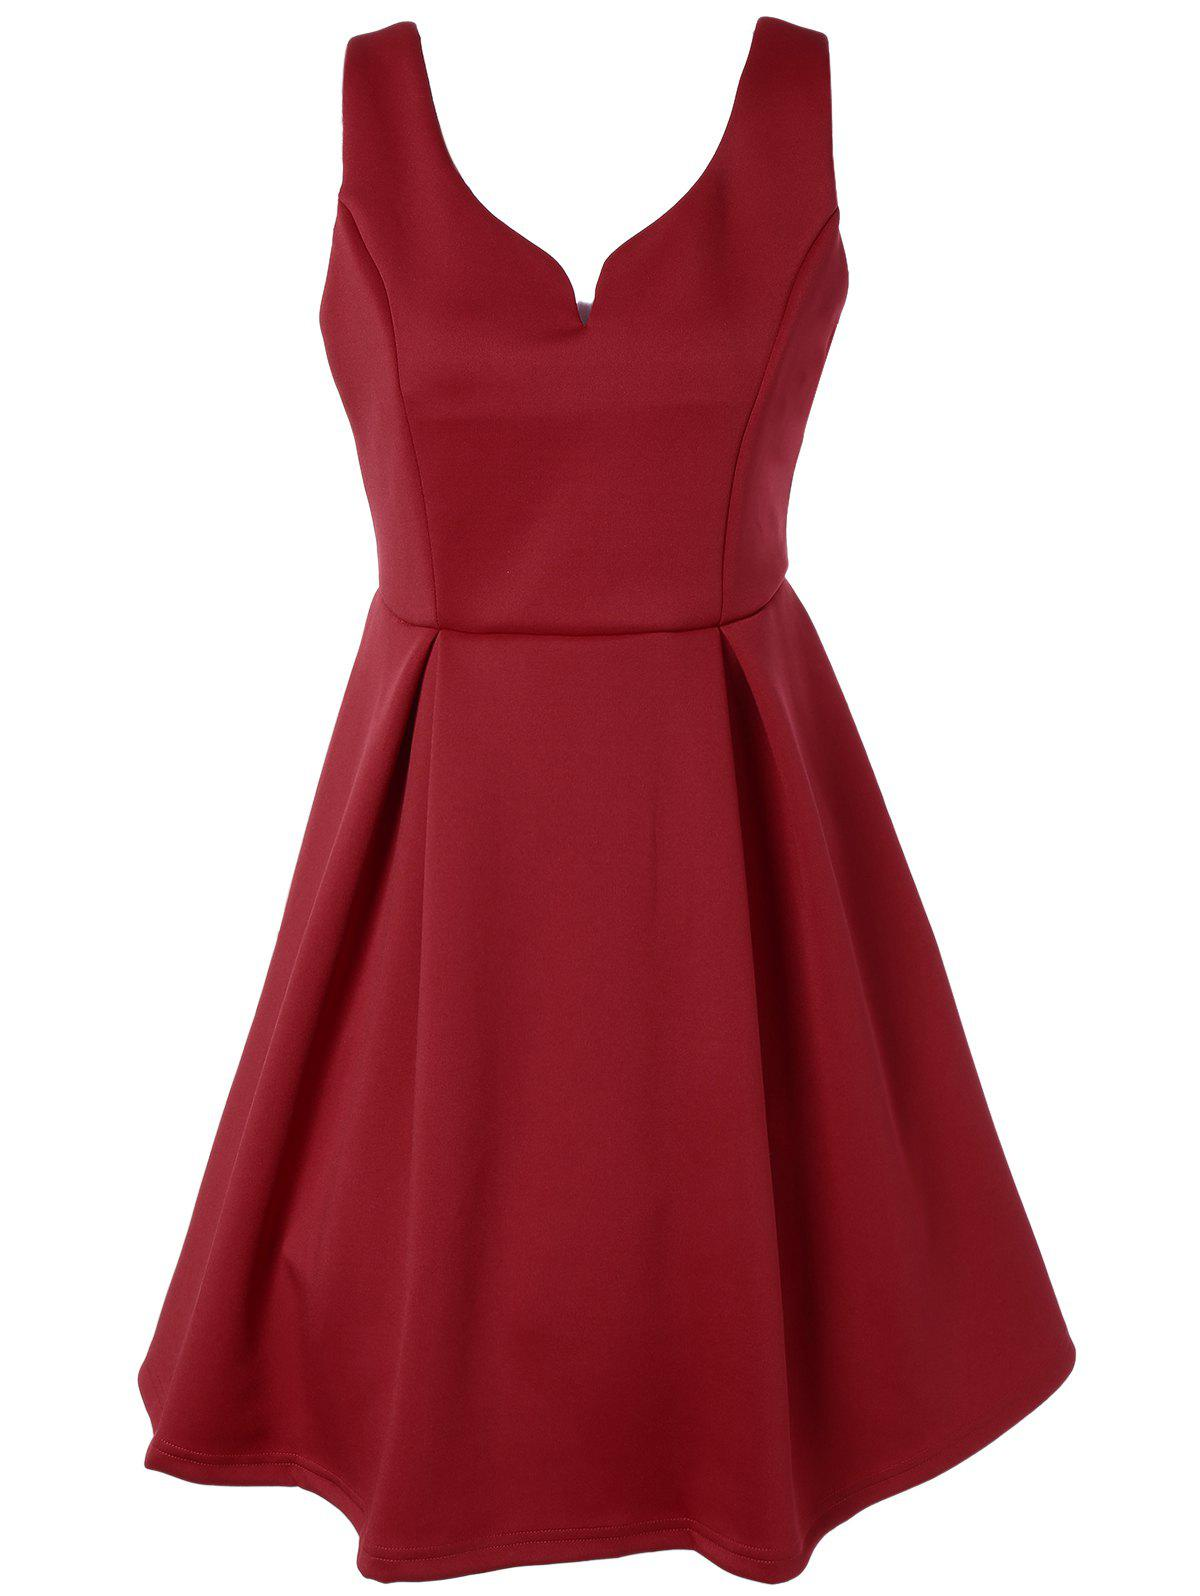 V Neck Fit and Flare Cocktail Dress - RED XL